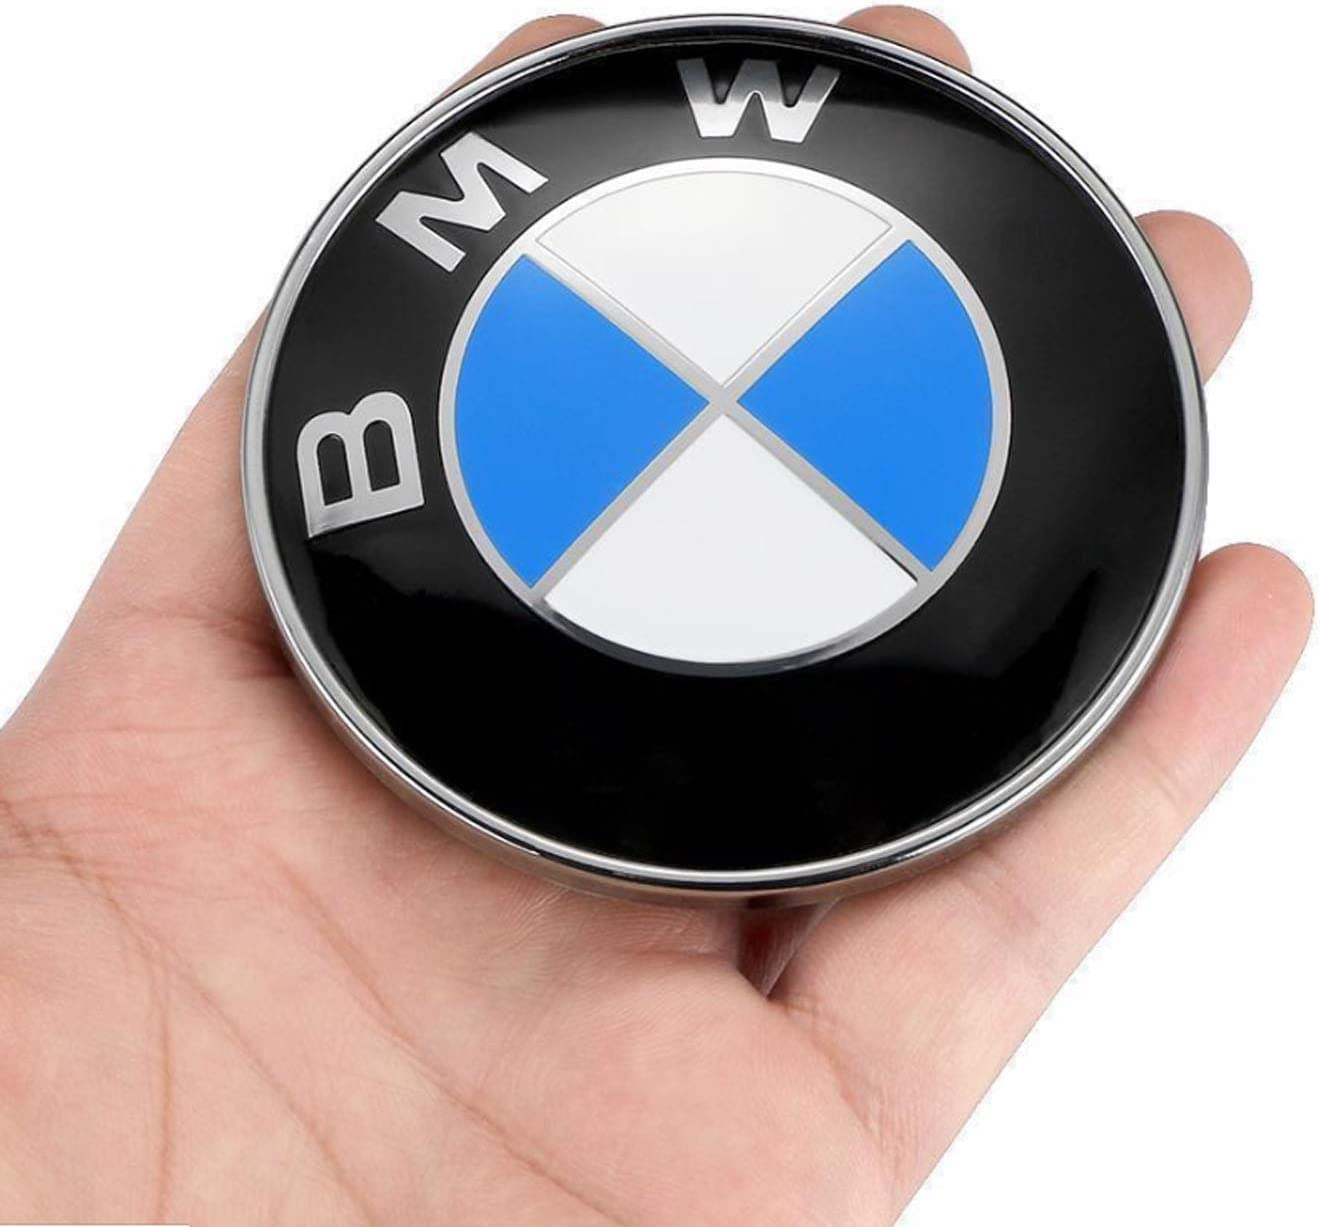 Ldntly 2pcs BMW Logo,BMW Emblem Replacement for BMW Hood or Trunk,Front 82mm and Rear 74mm Emblem Badge Blue /& White,for ALL Models BMW E30 E36 E46 E34 E39 E60 E65 E38 X3 X5 X6 3 4 5 6 7 8